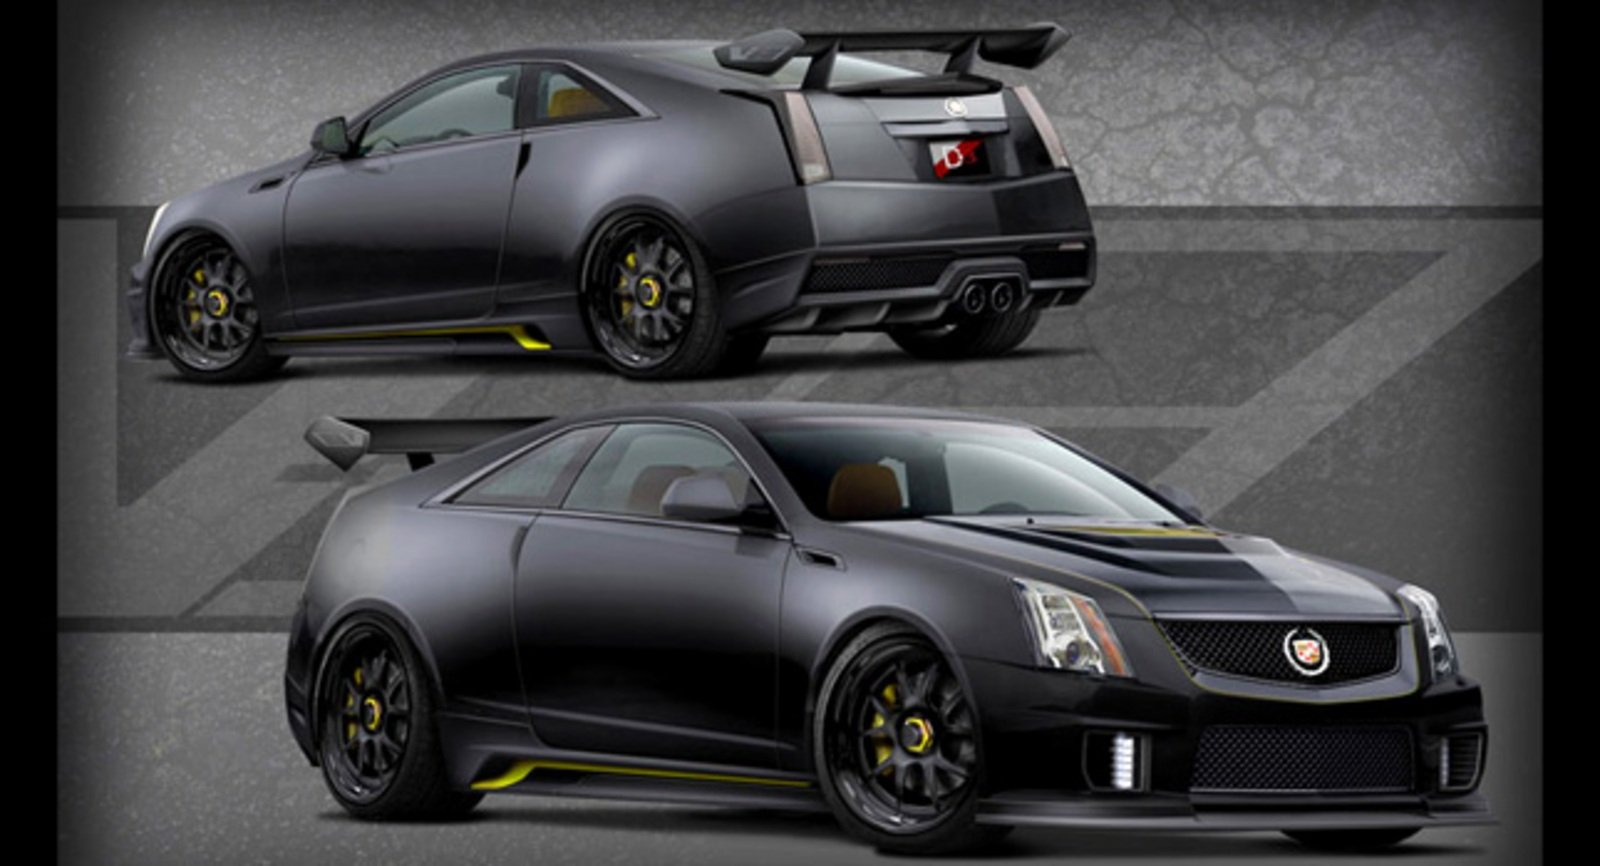 2011 Cadillac Cts-v Le Monstre By D3 Group Review